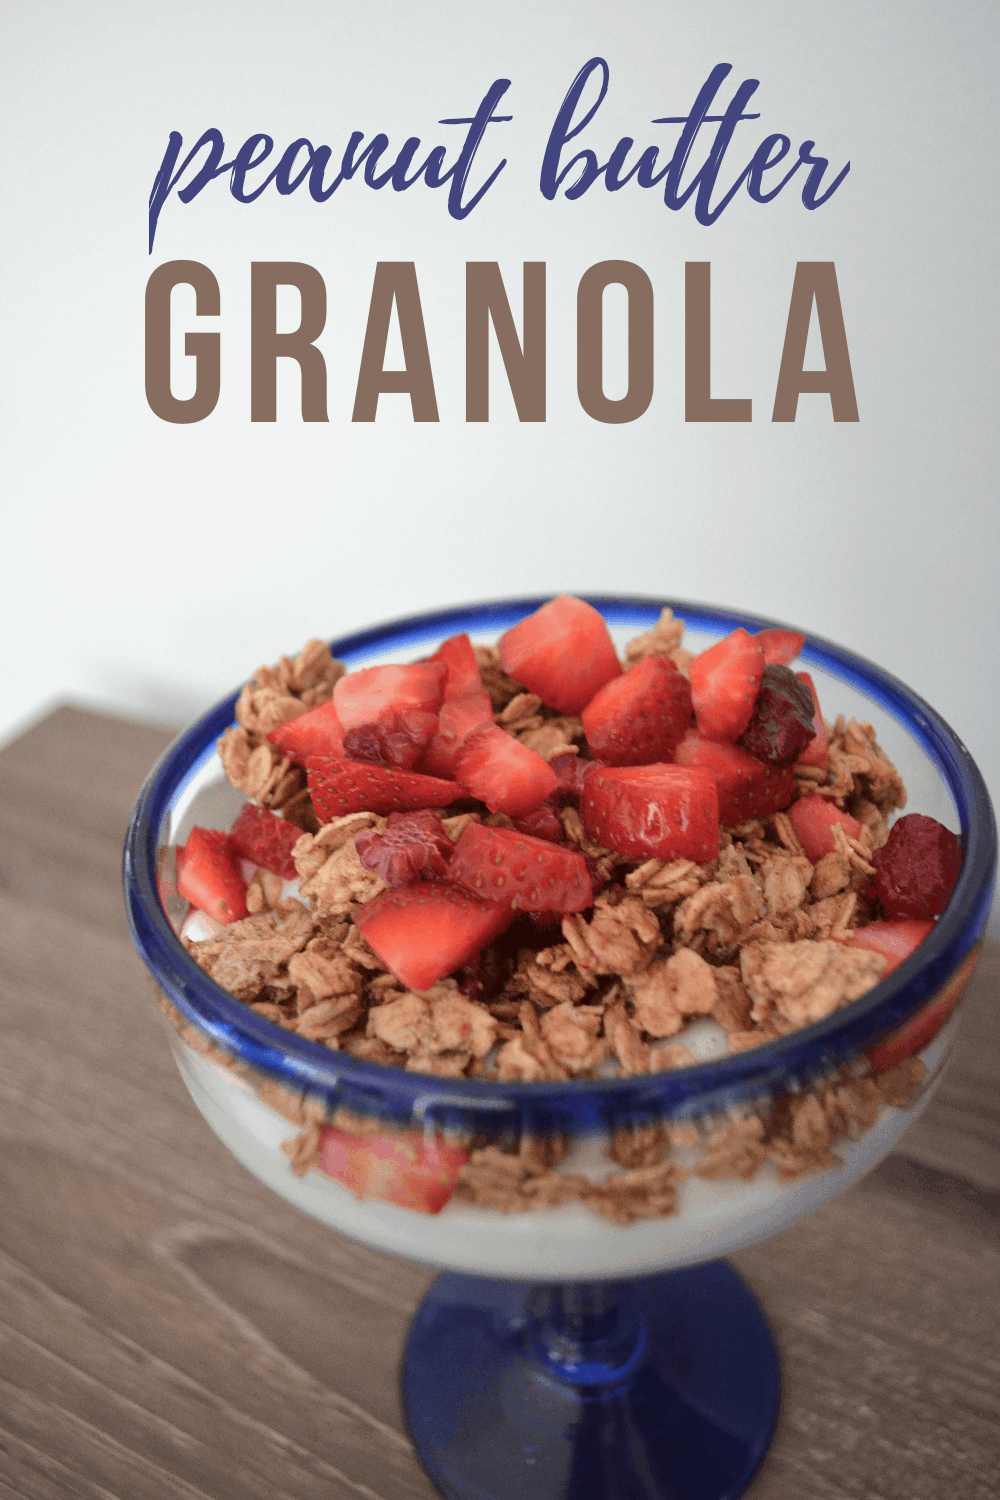 peanut butter granola with berries is a delicious combo